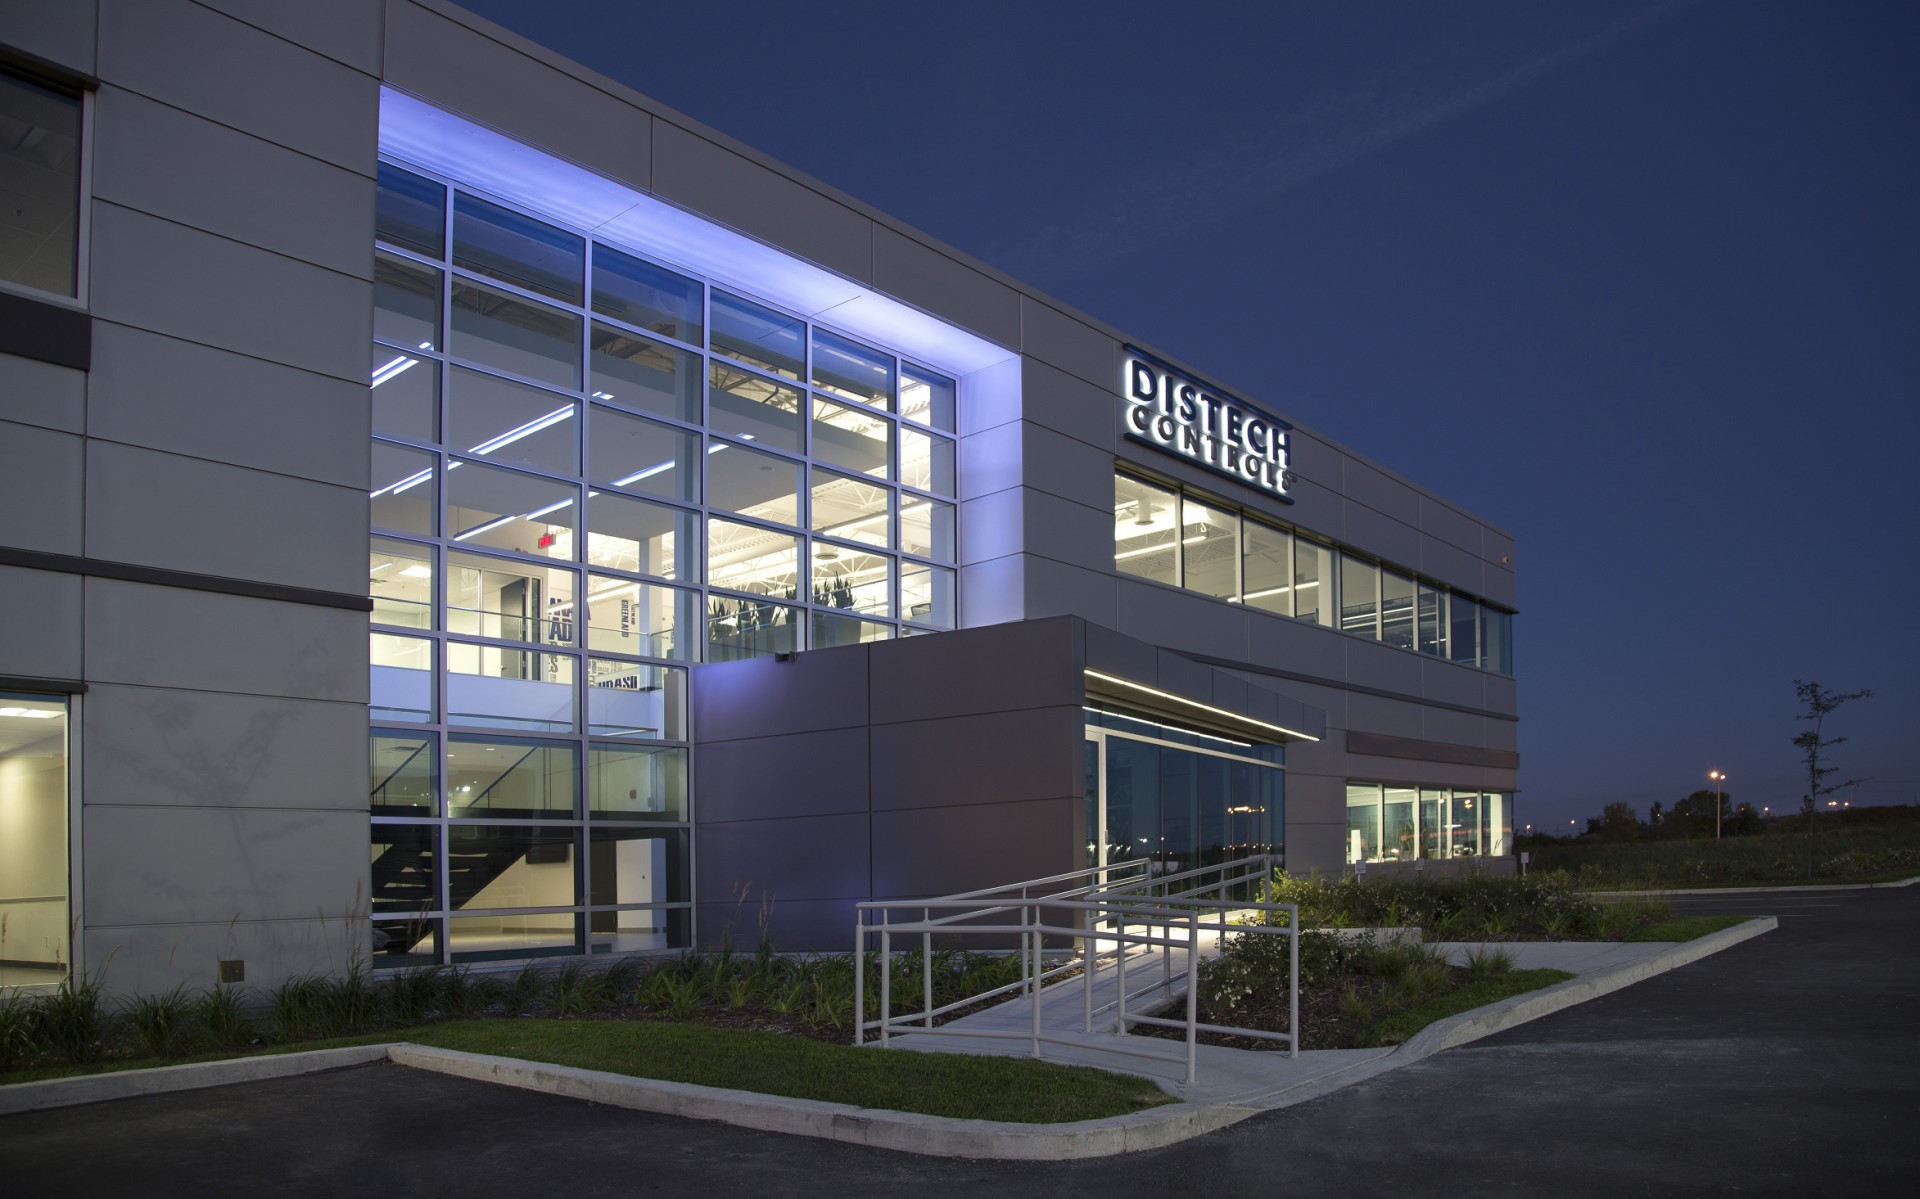 The company used Lumenfacade fixtures to highlight the building's entrance.